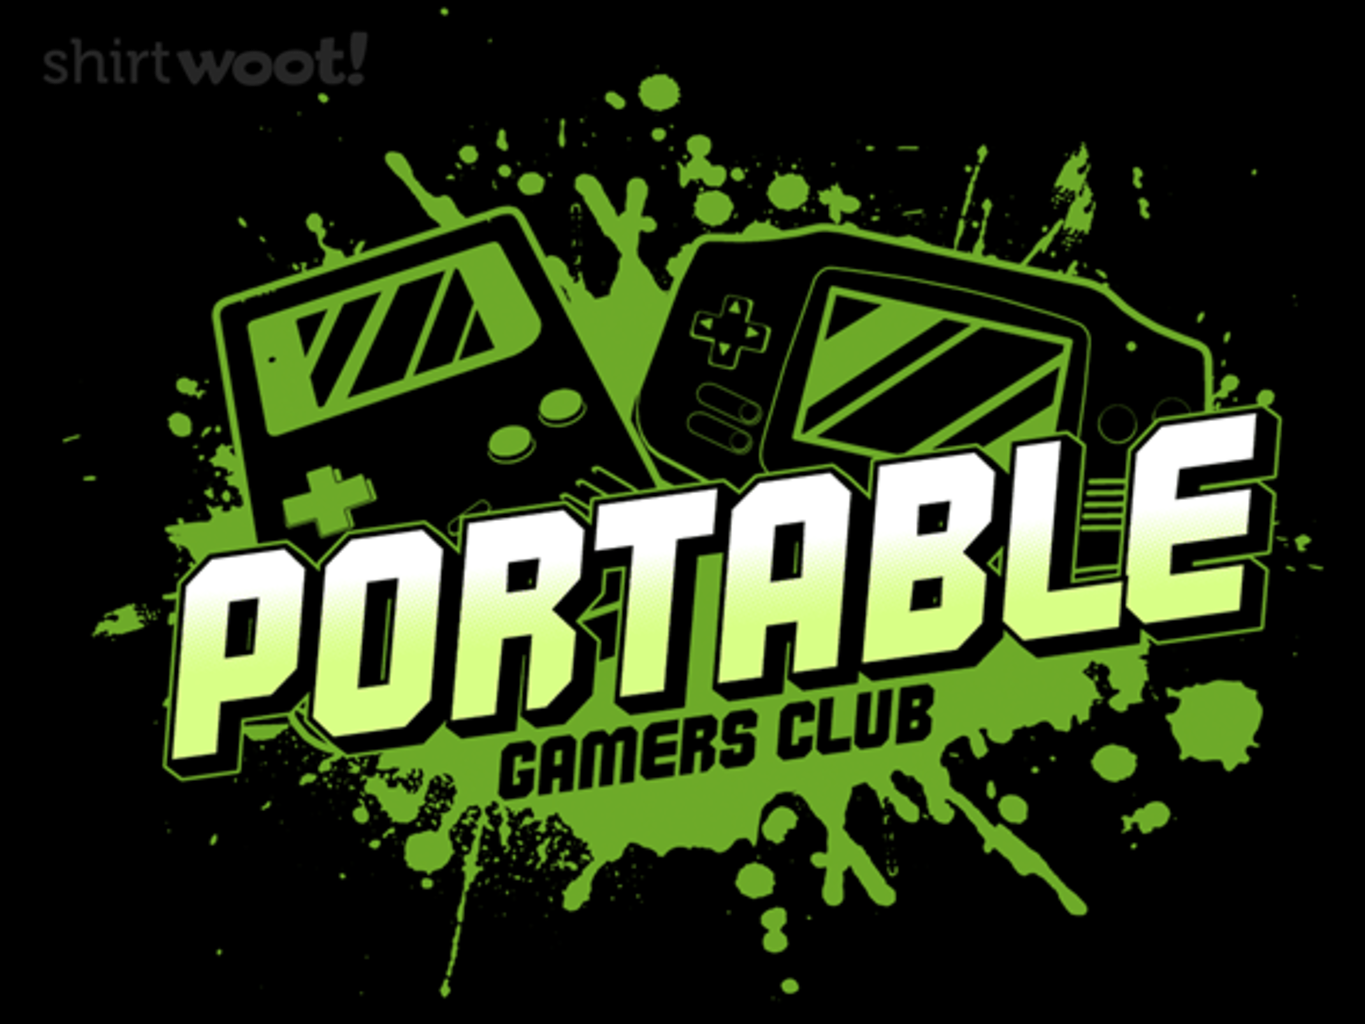 Woot!: Portable Gamers Club - $15.00 + Free shipping